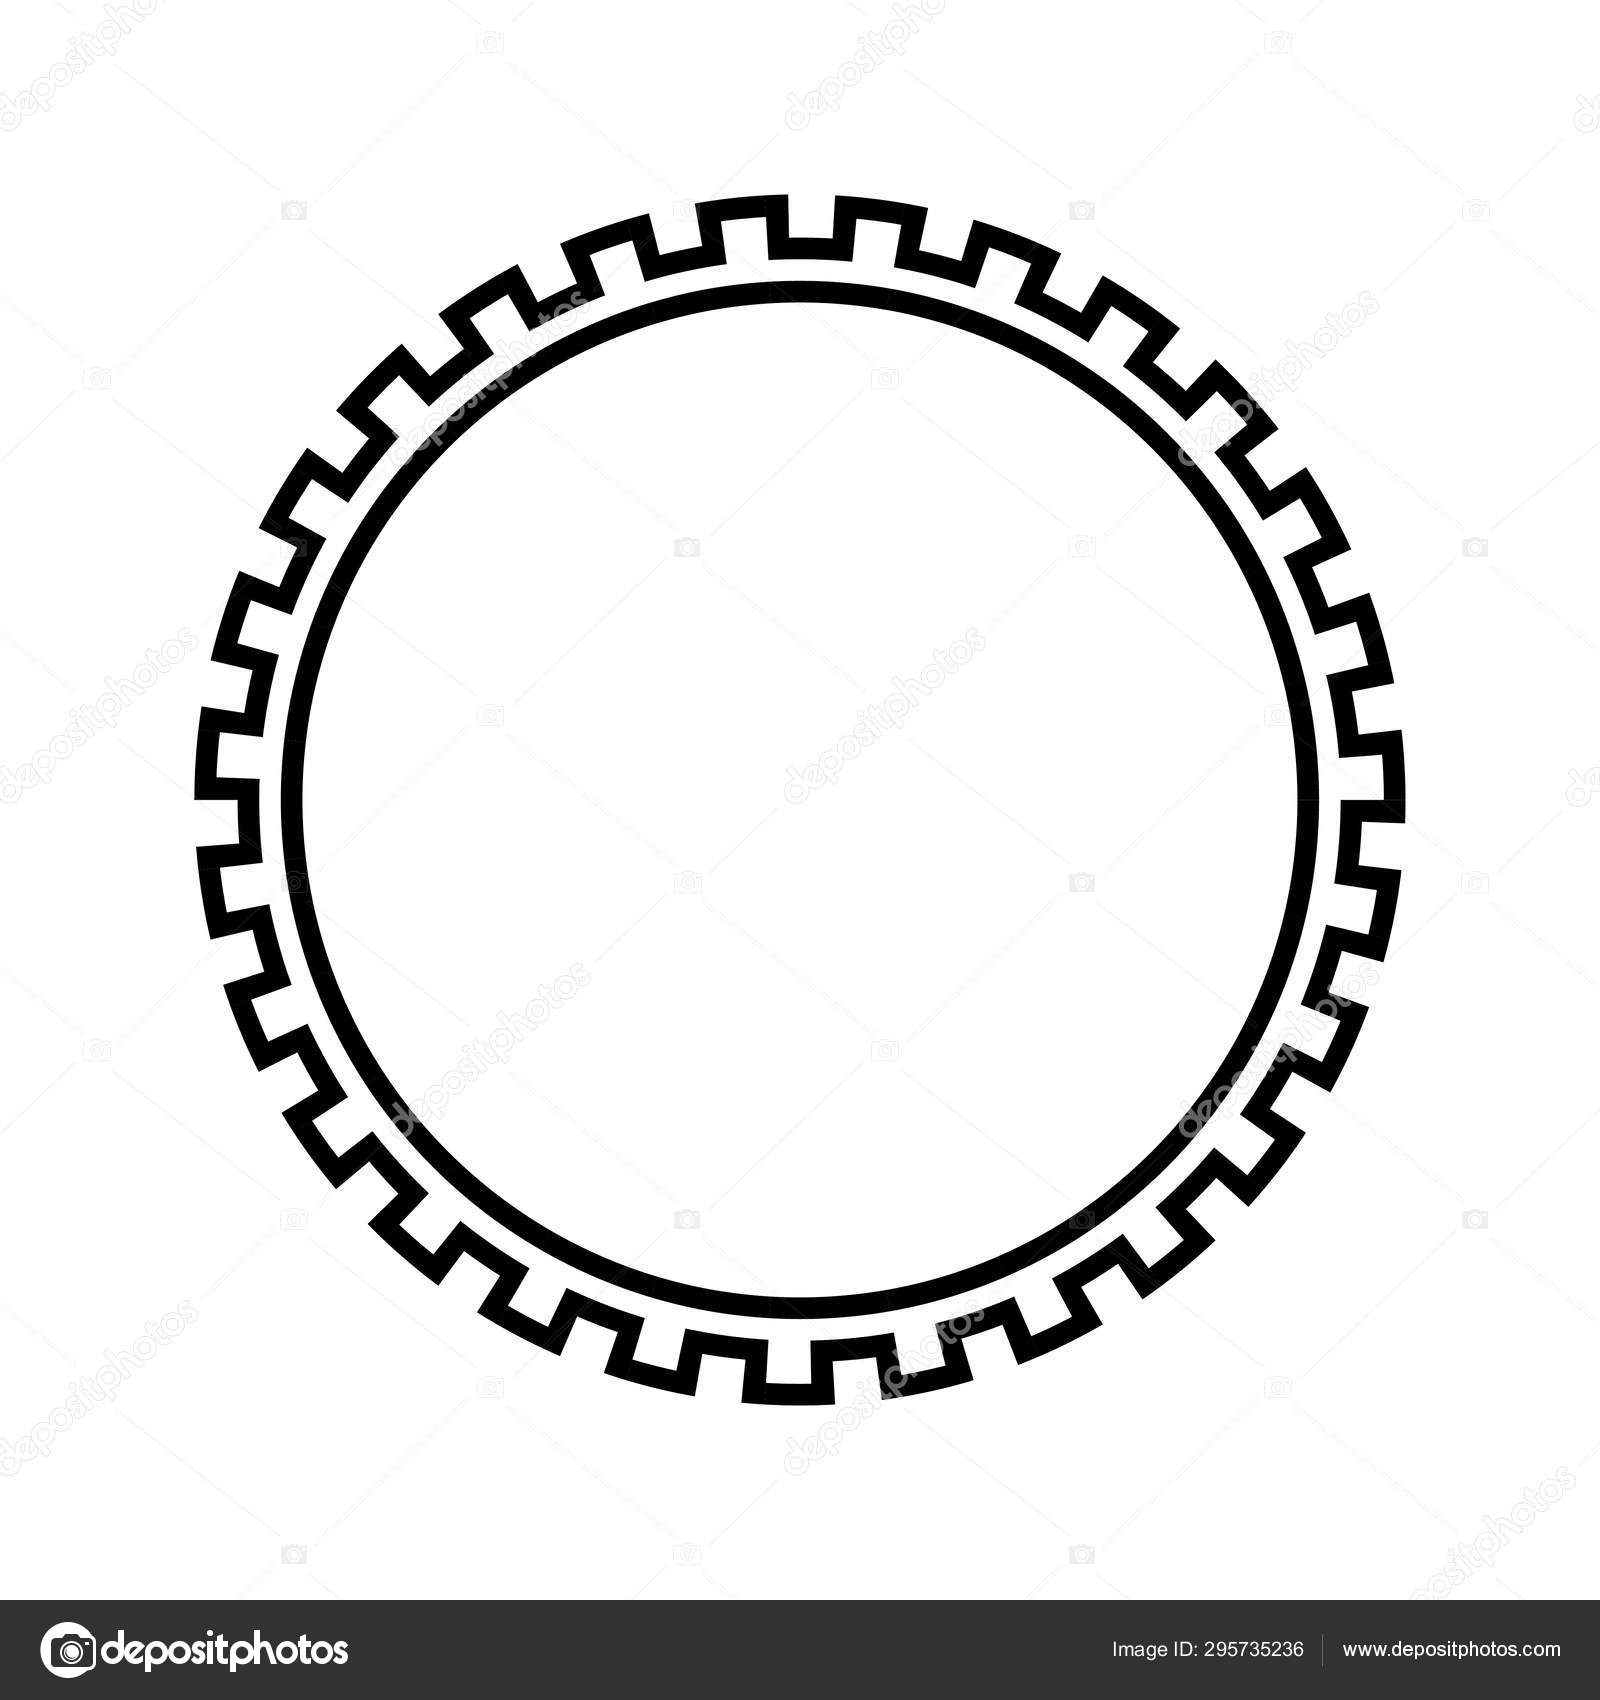 Greek Key Round Frame. Typical Egyptian, Assyrian And Greek Motives..  Royalty Free Cliparts, Vectors, And Stock Illustration. Image 119493299.